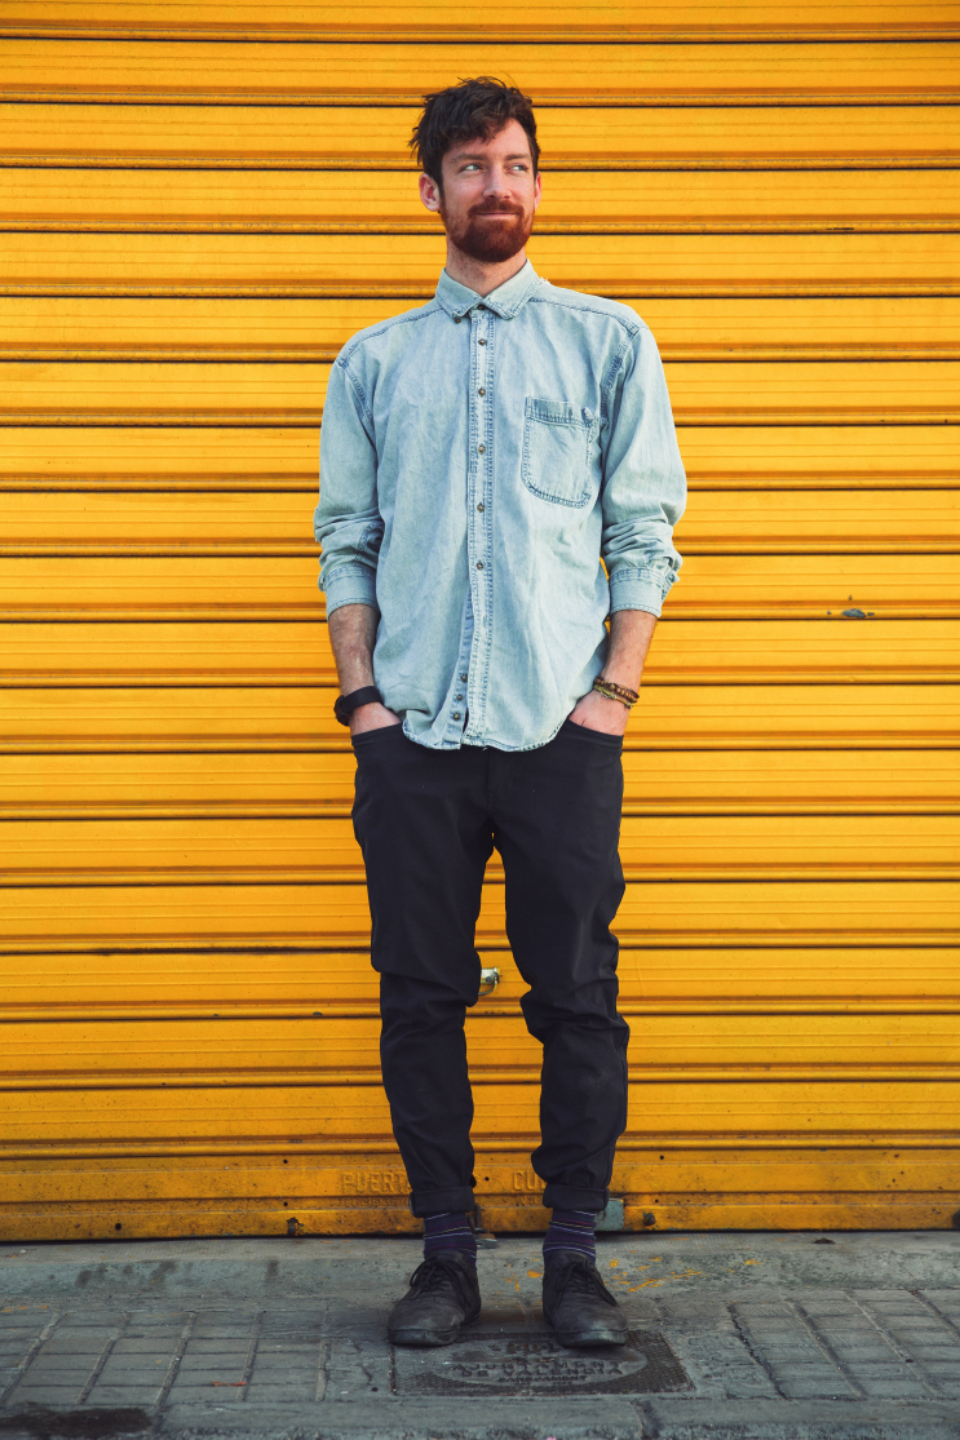 man smiling hipster pockets fashion yellow wall jeans shirt beard standing solo relaxed urban looking wristwatch